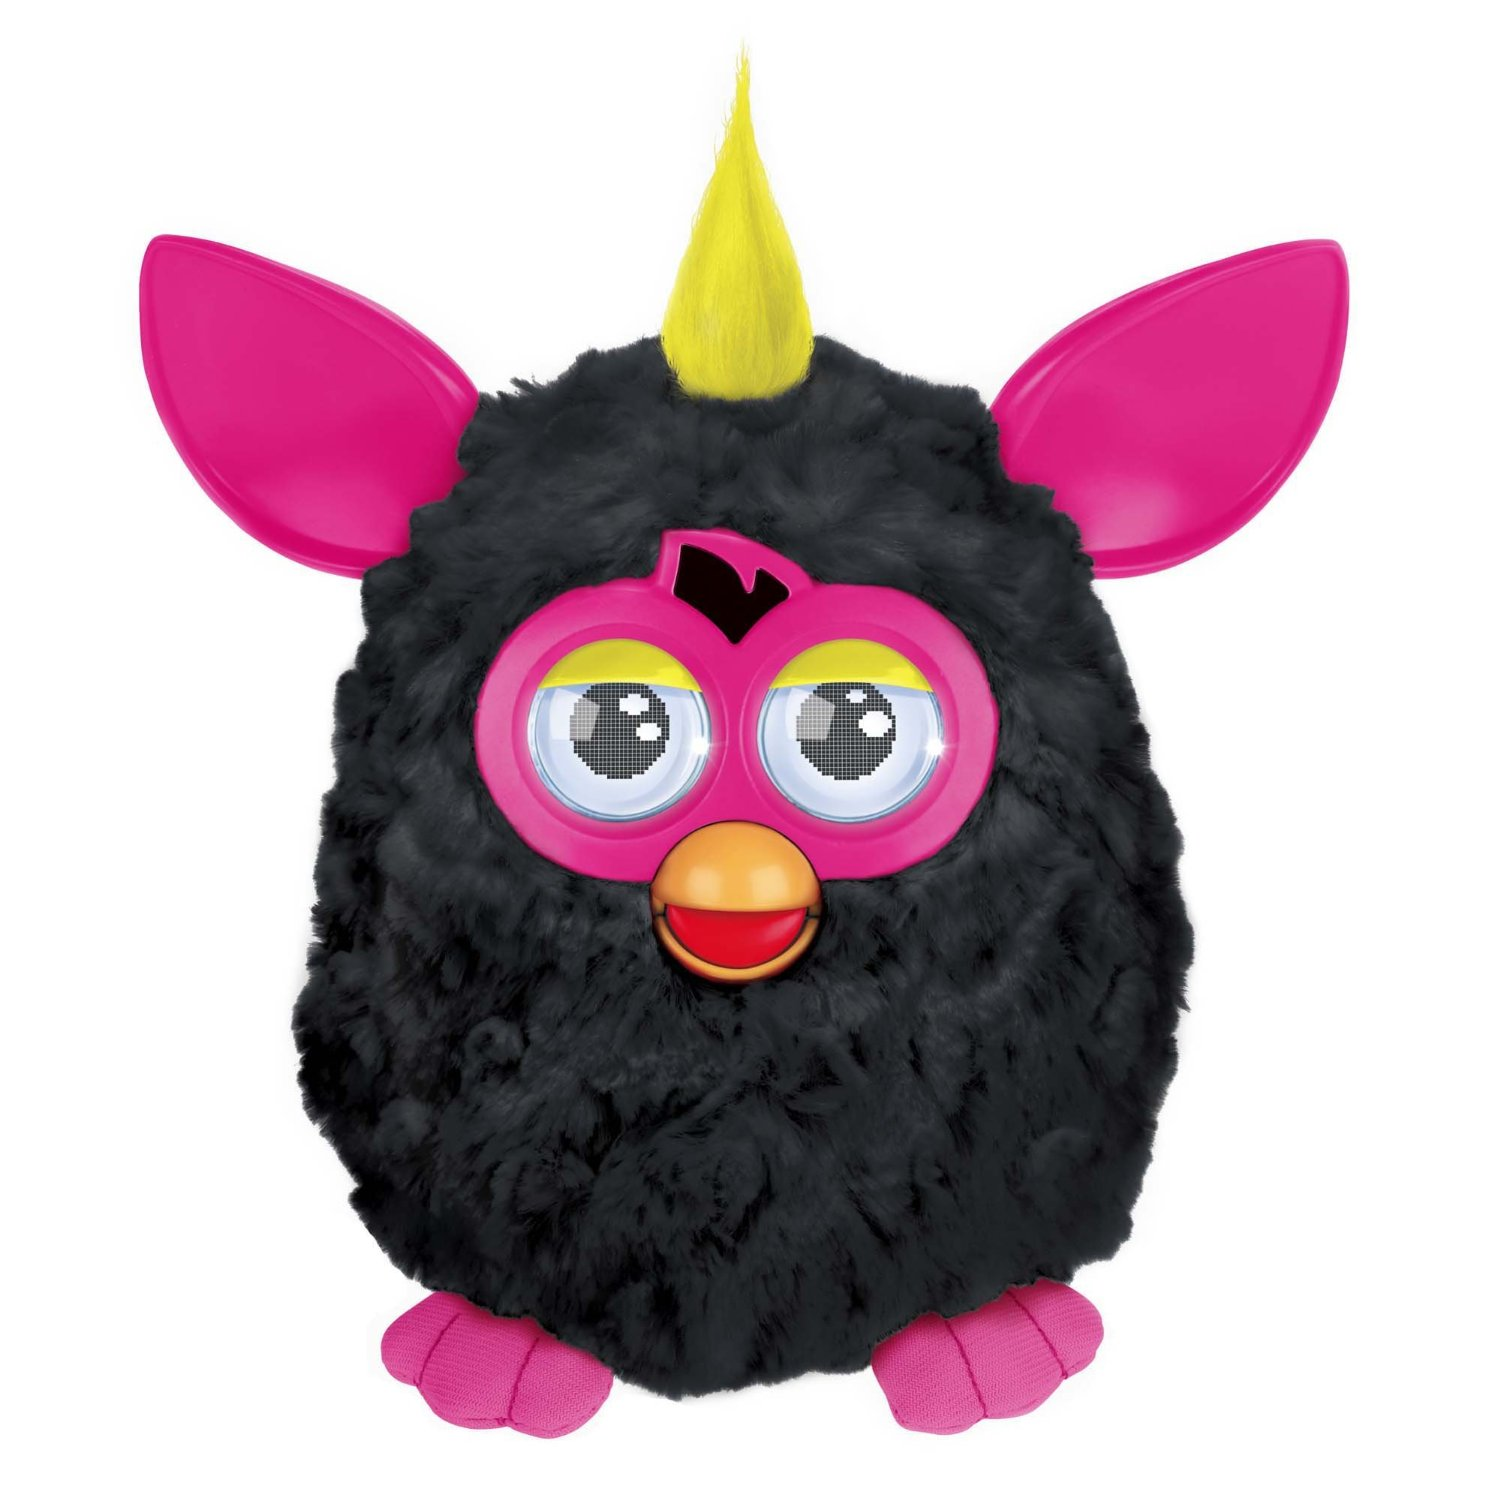 ZFB013 Furby Punky Pink